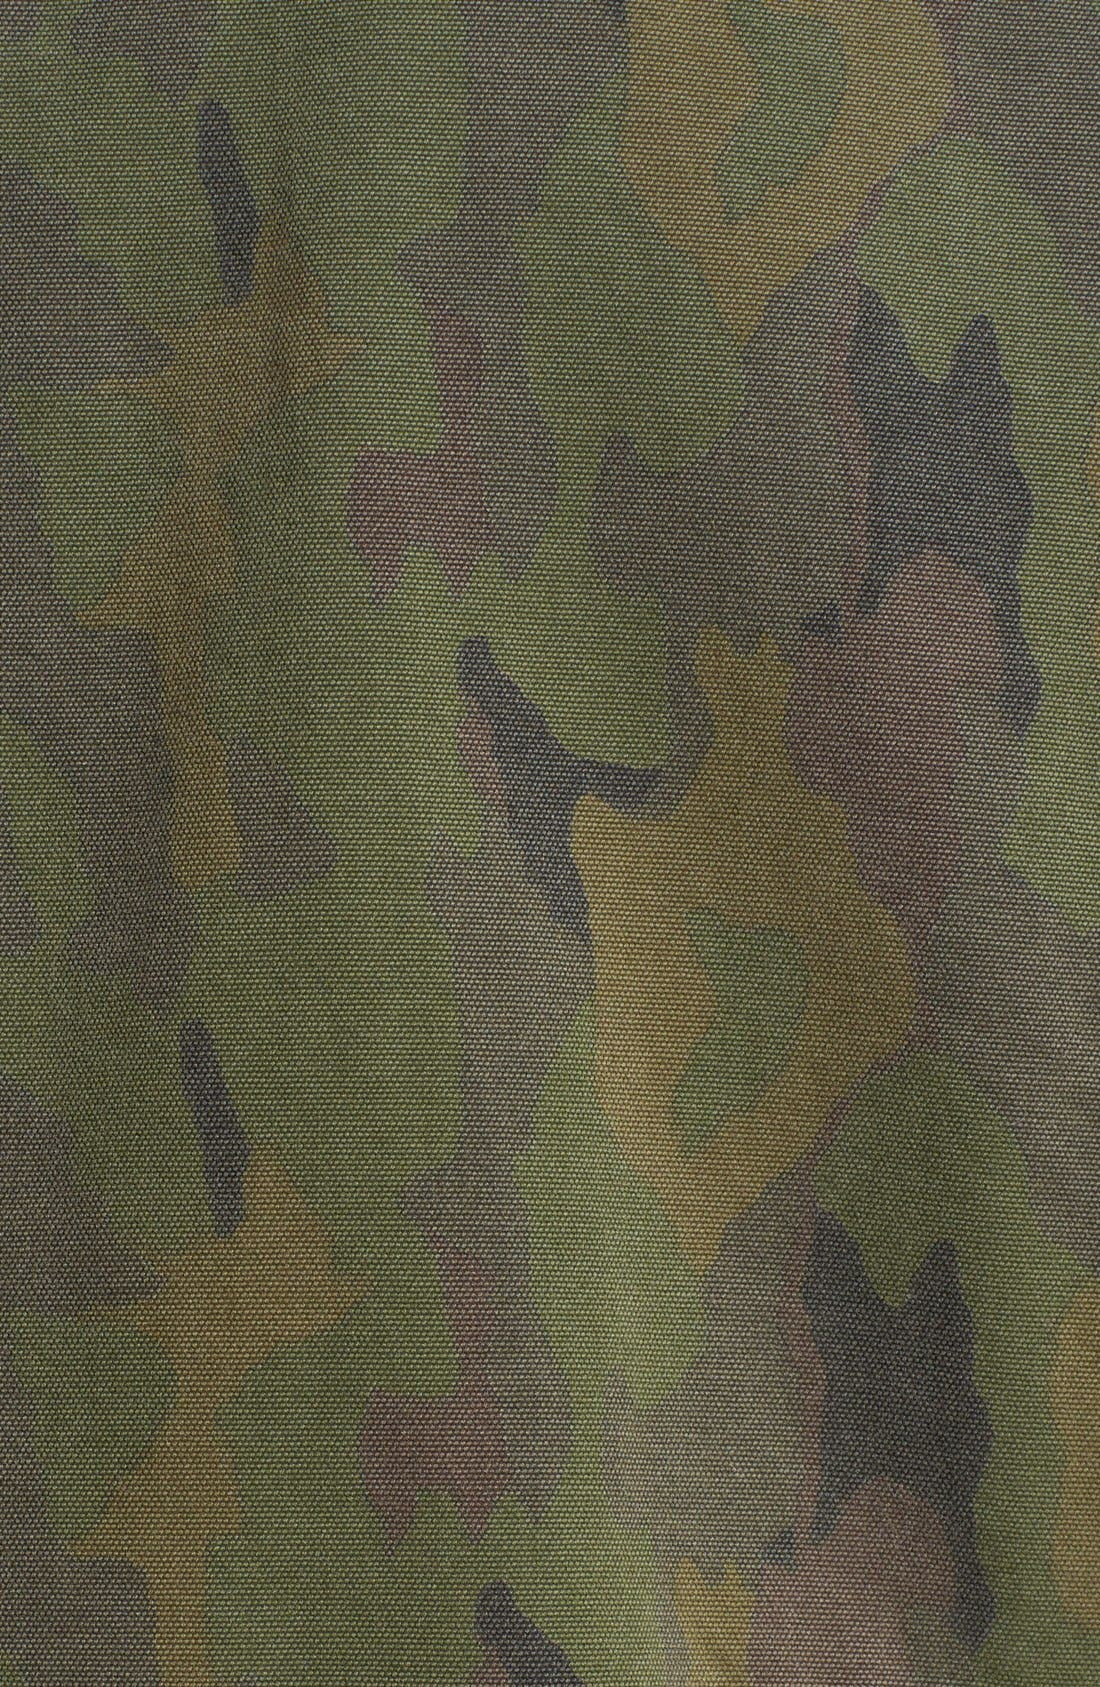 'Upland' Hunting Jacket,                             Alternate thumbnail 3, color,                             300